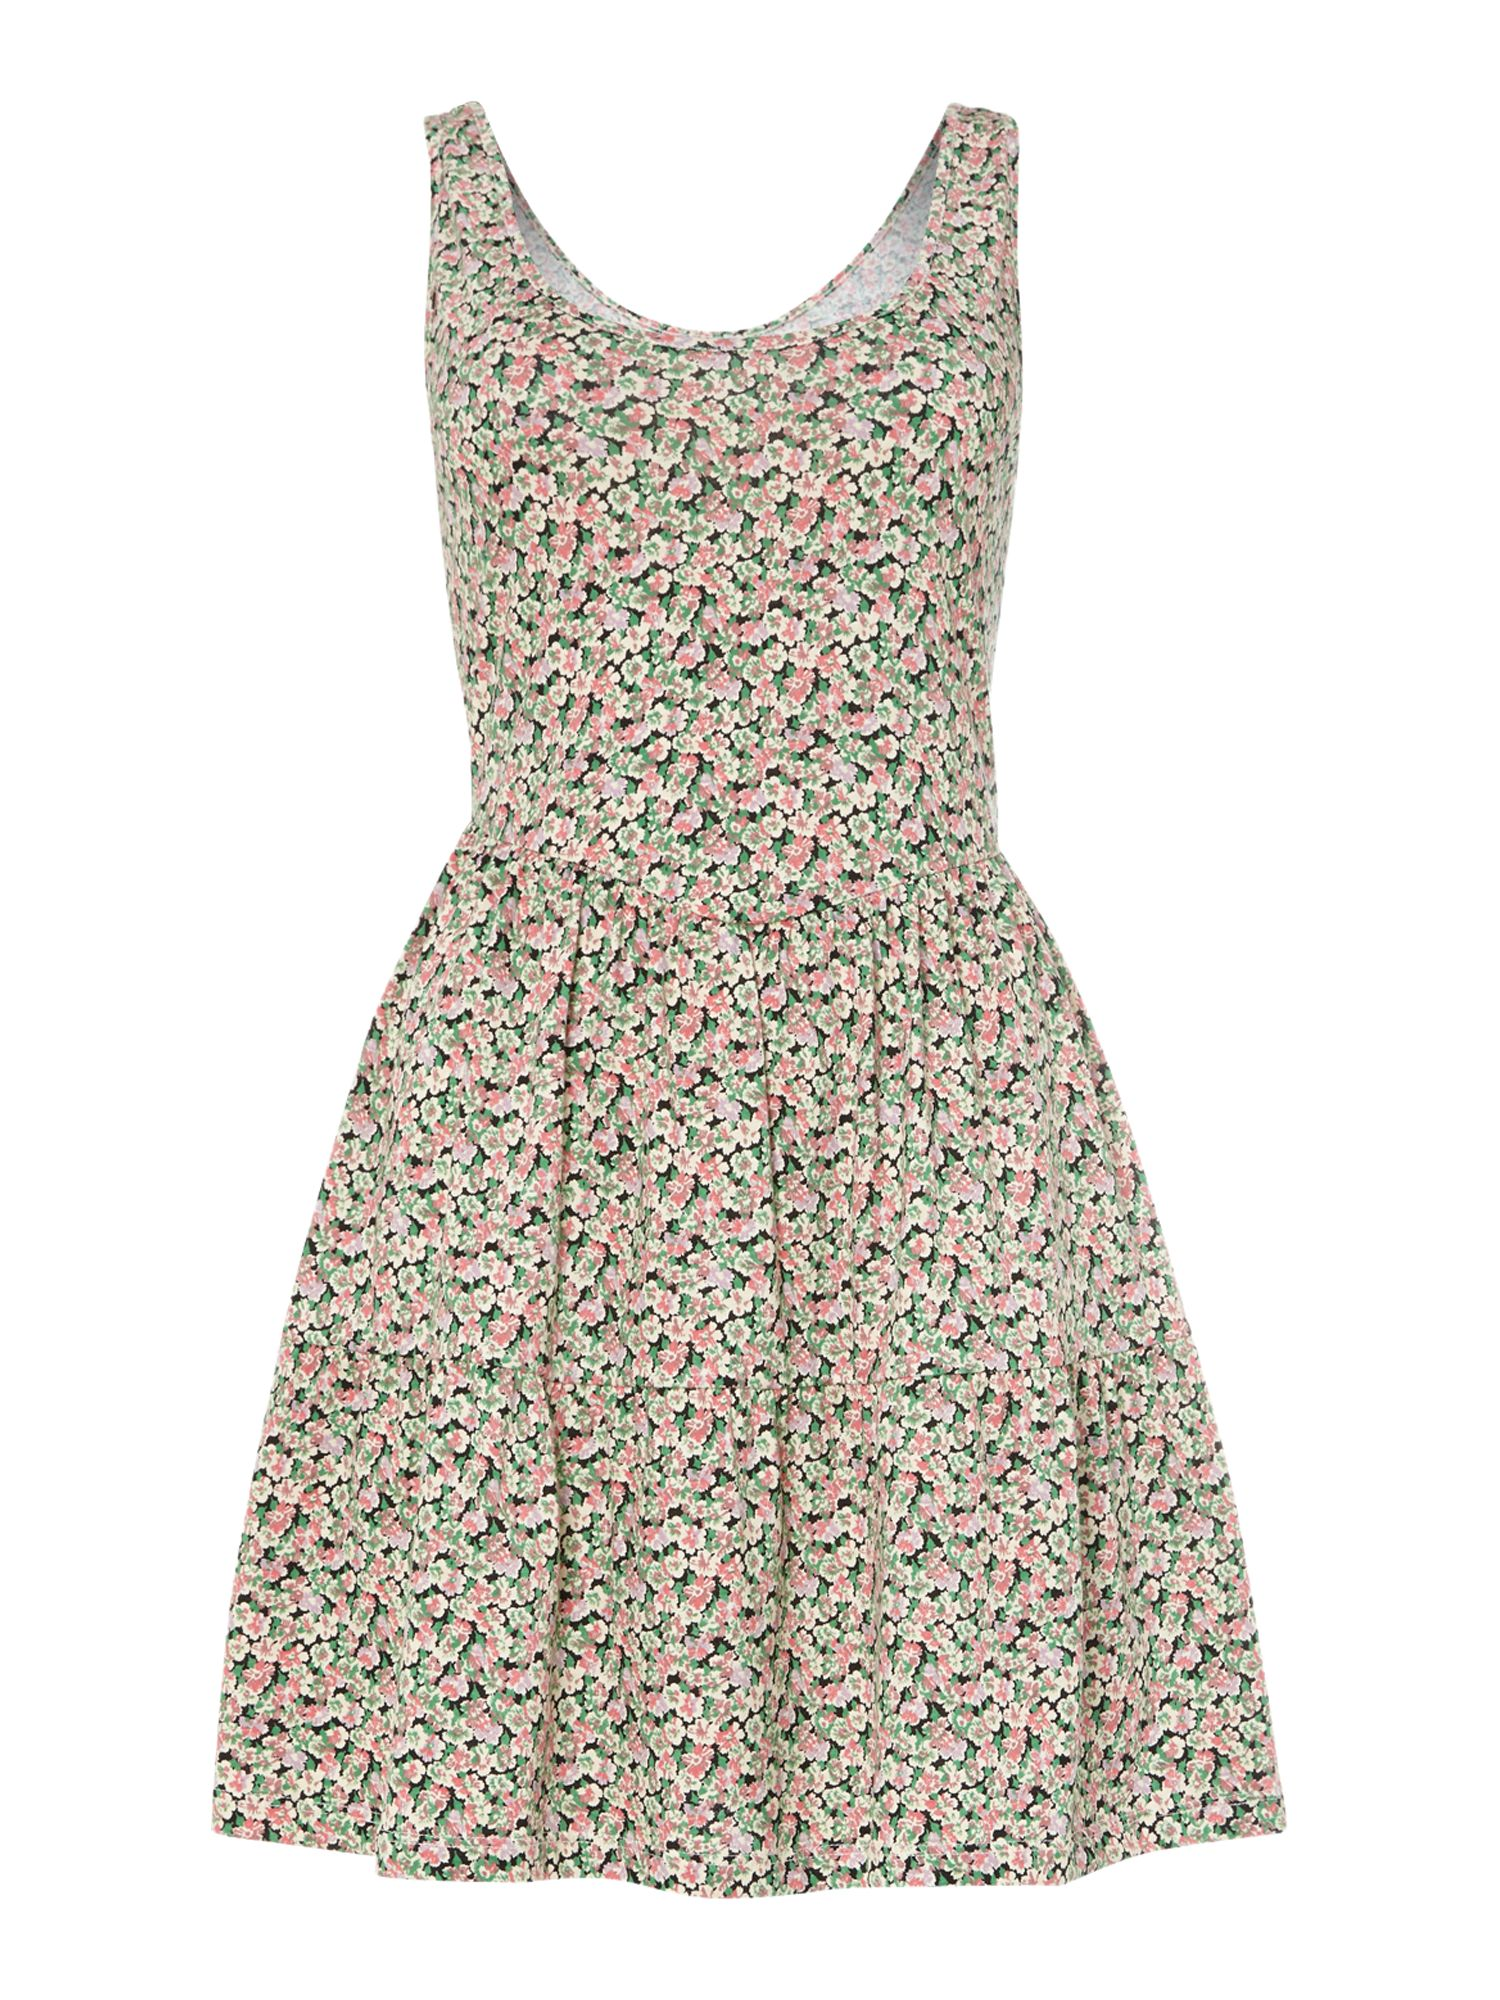 Tiered sleeveless floral shift